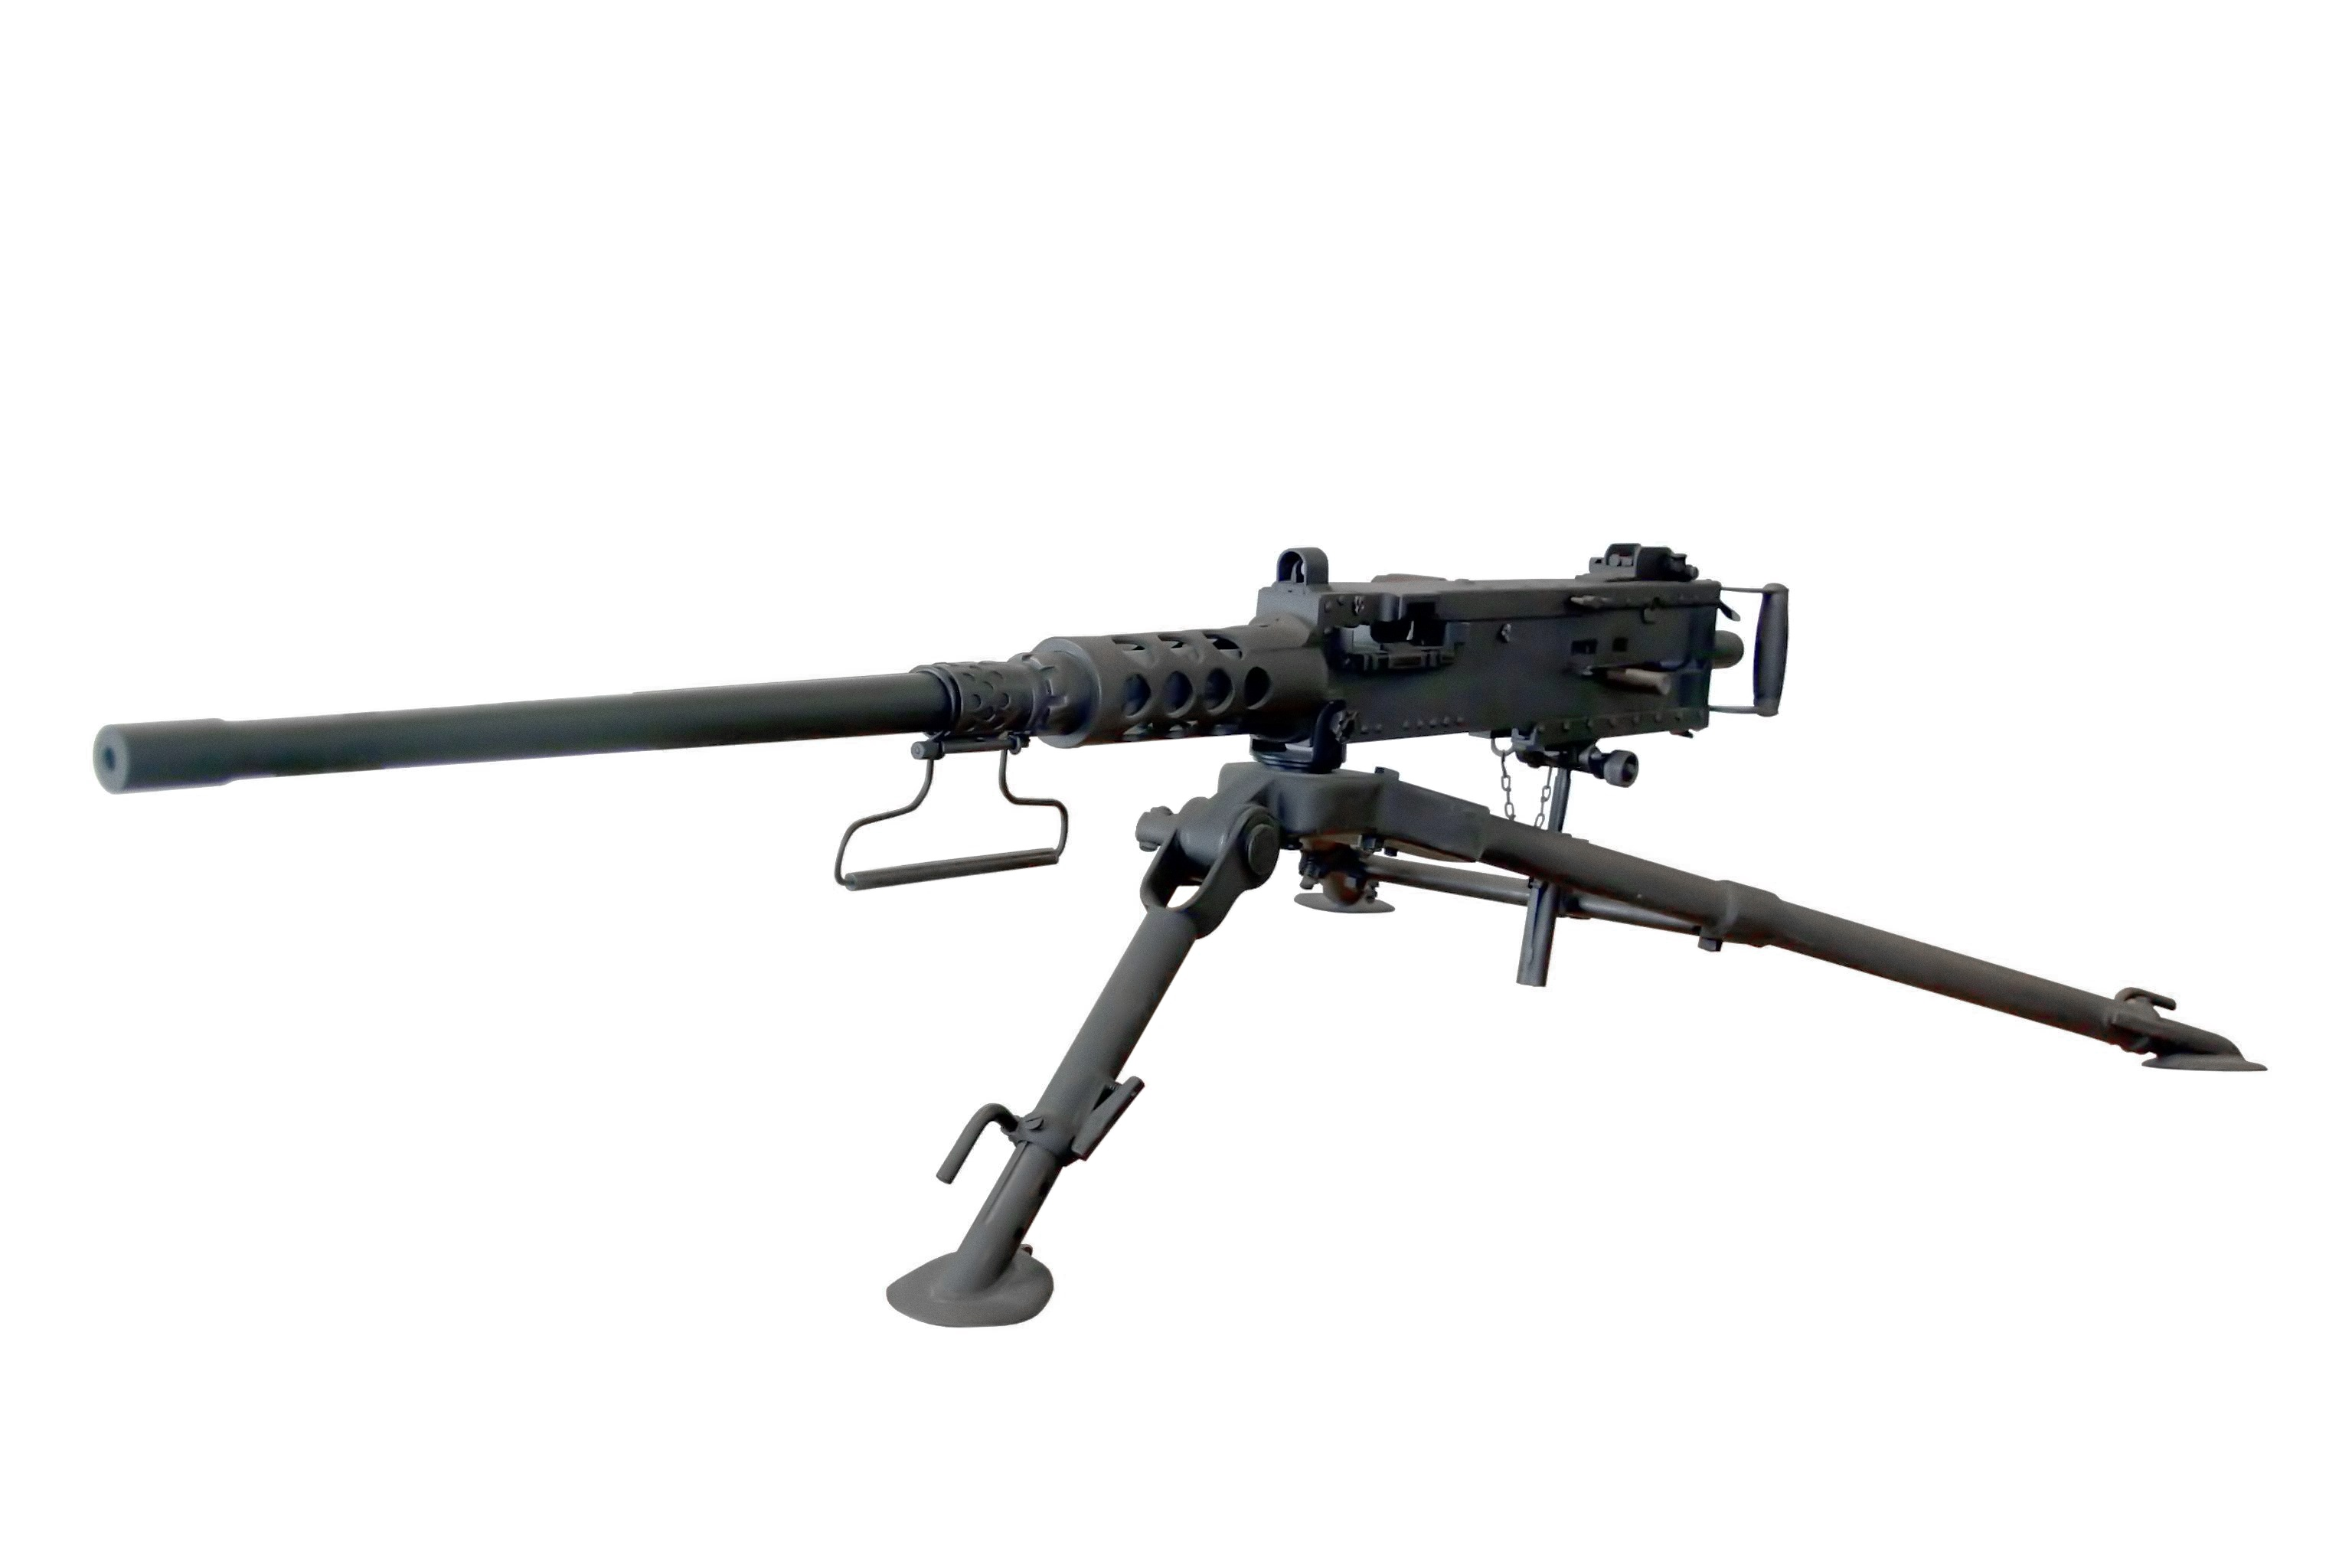 .50 Caliber (12.7x99mm) HMG